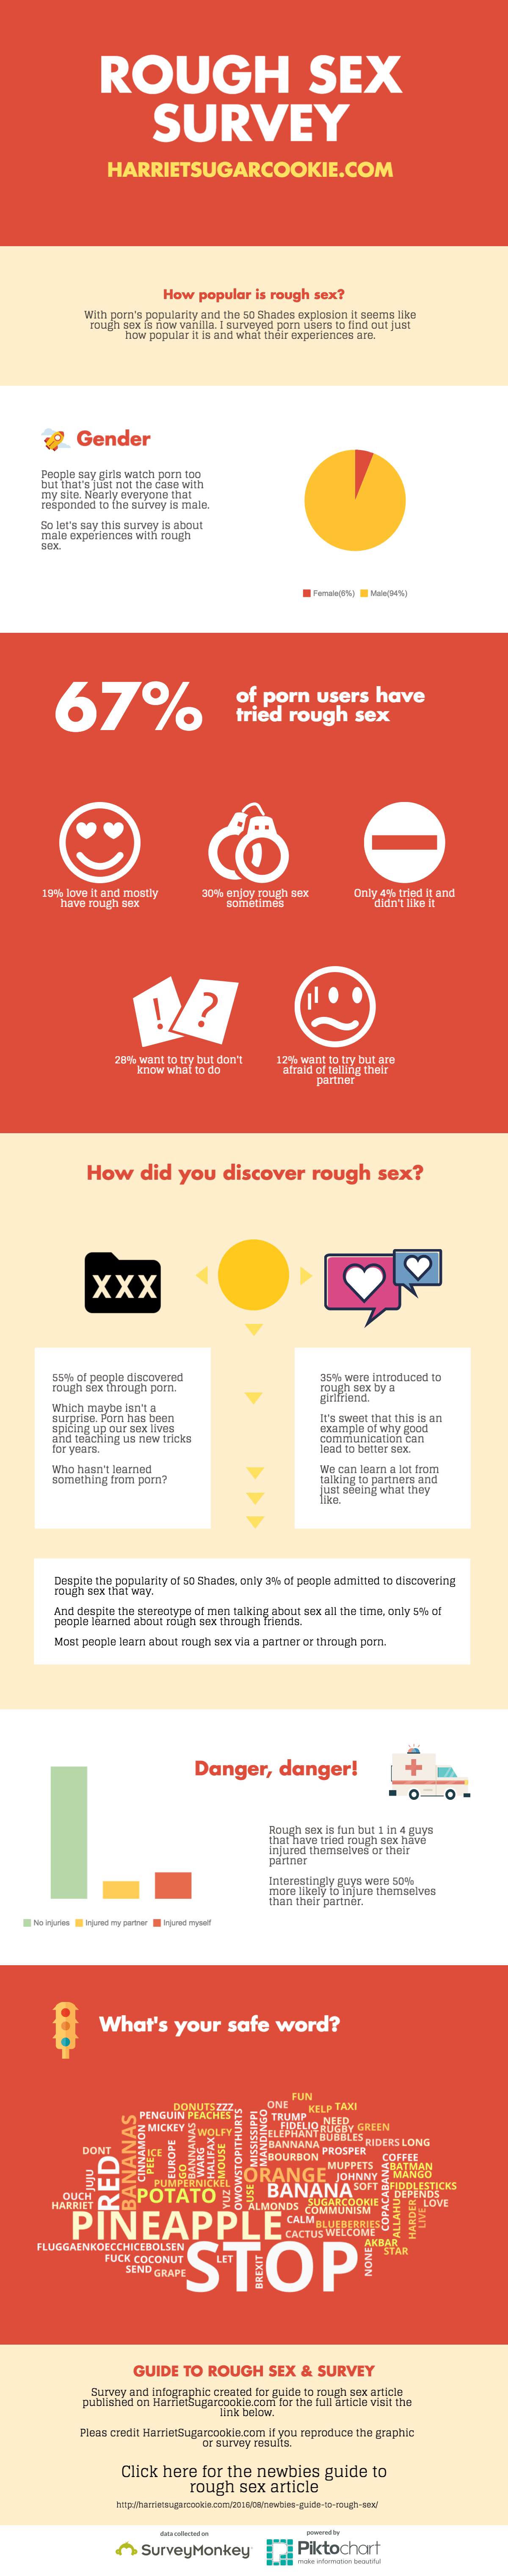 Rough sex infographic - Harriet Sugarcookie